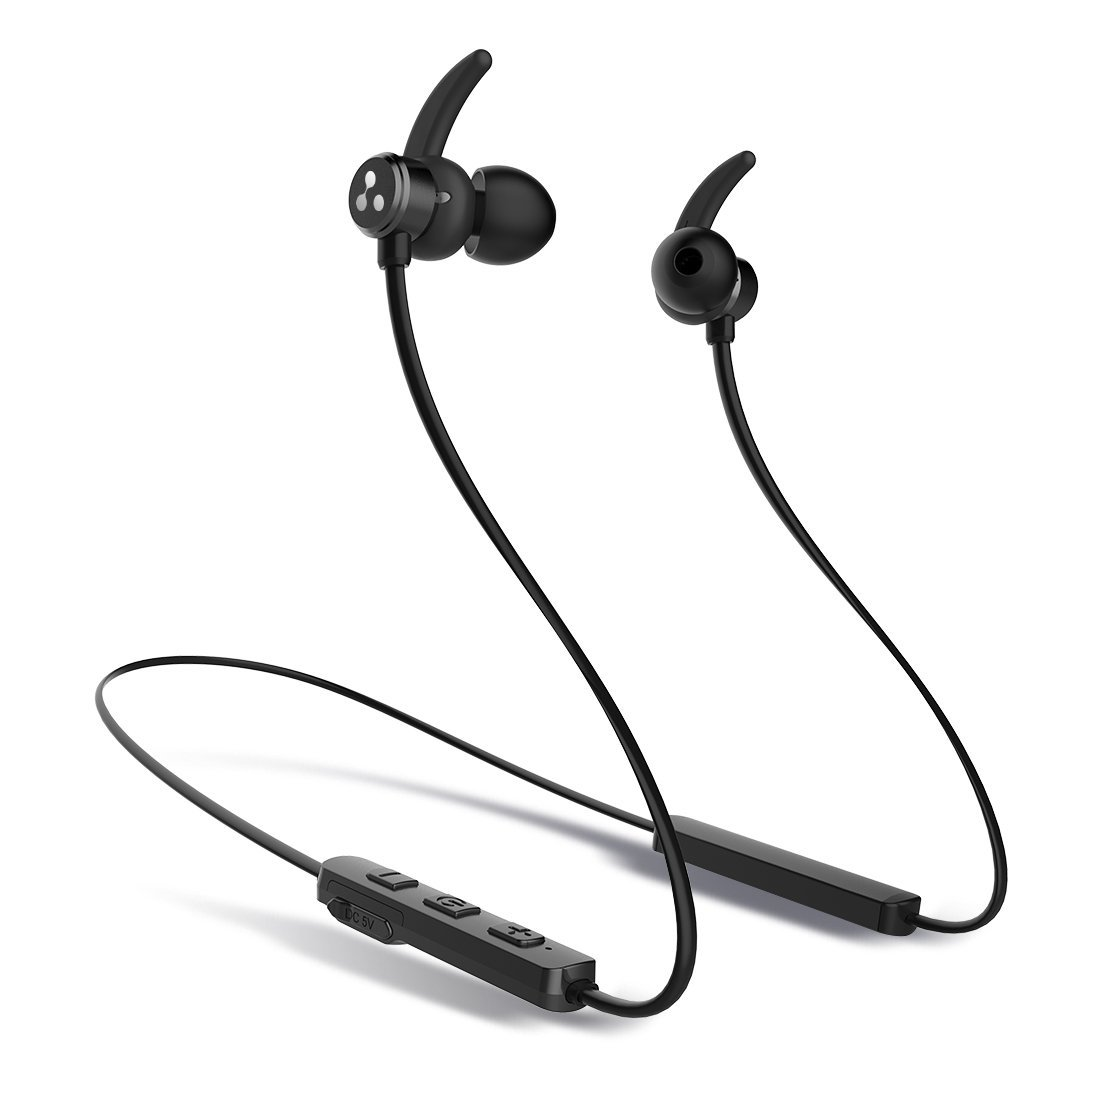 9942f8a6e70 Get Quotations · Bluetooth Earbuds, Syllable Wireless Earbuds D3X In-Ear  Bluetooth Headphones with Microphone, Wireless